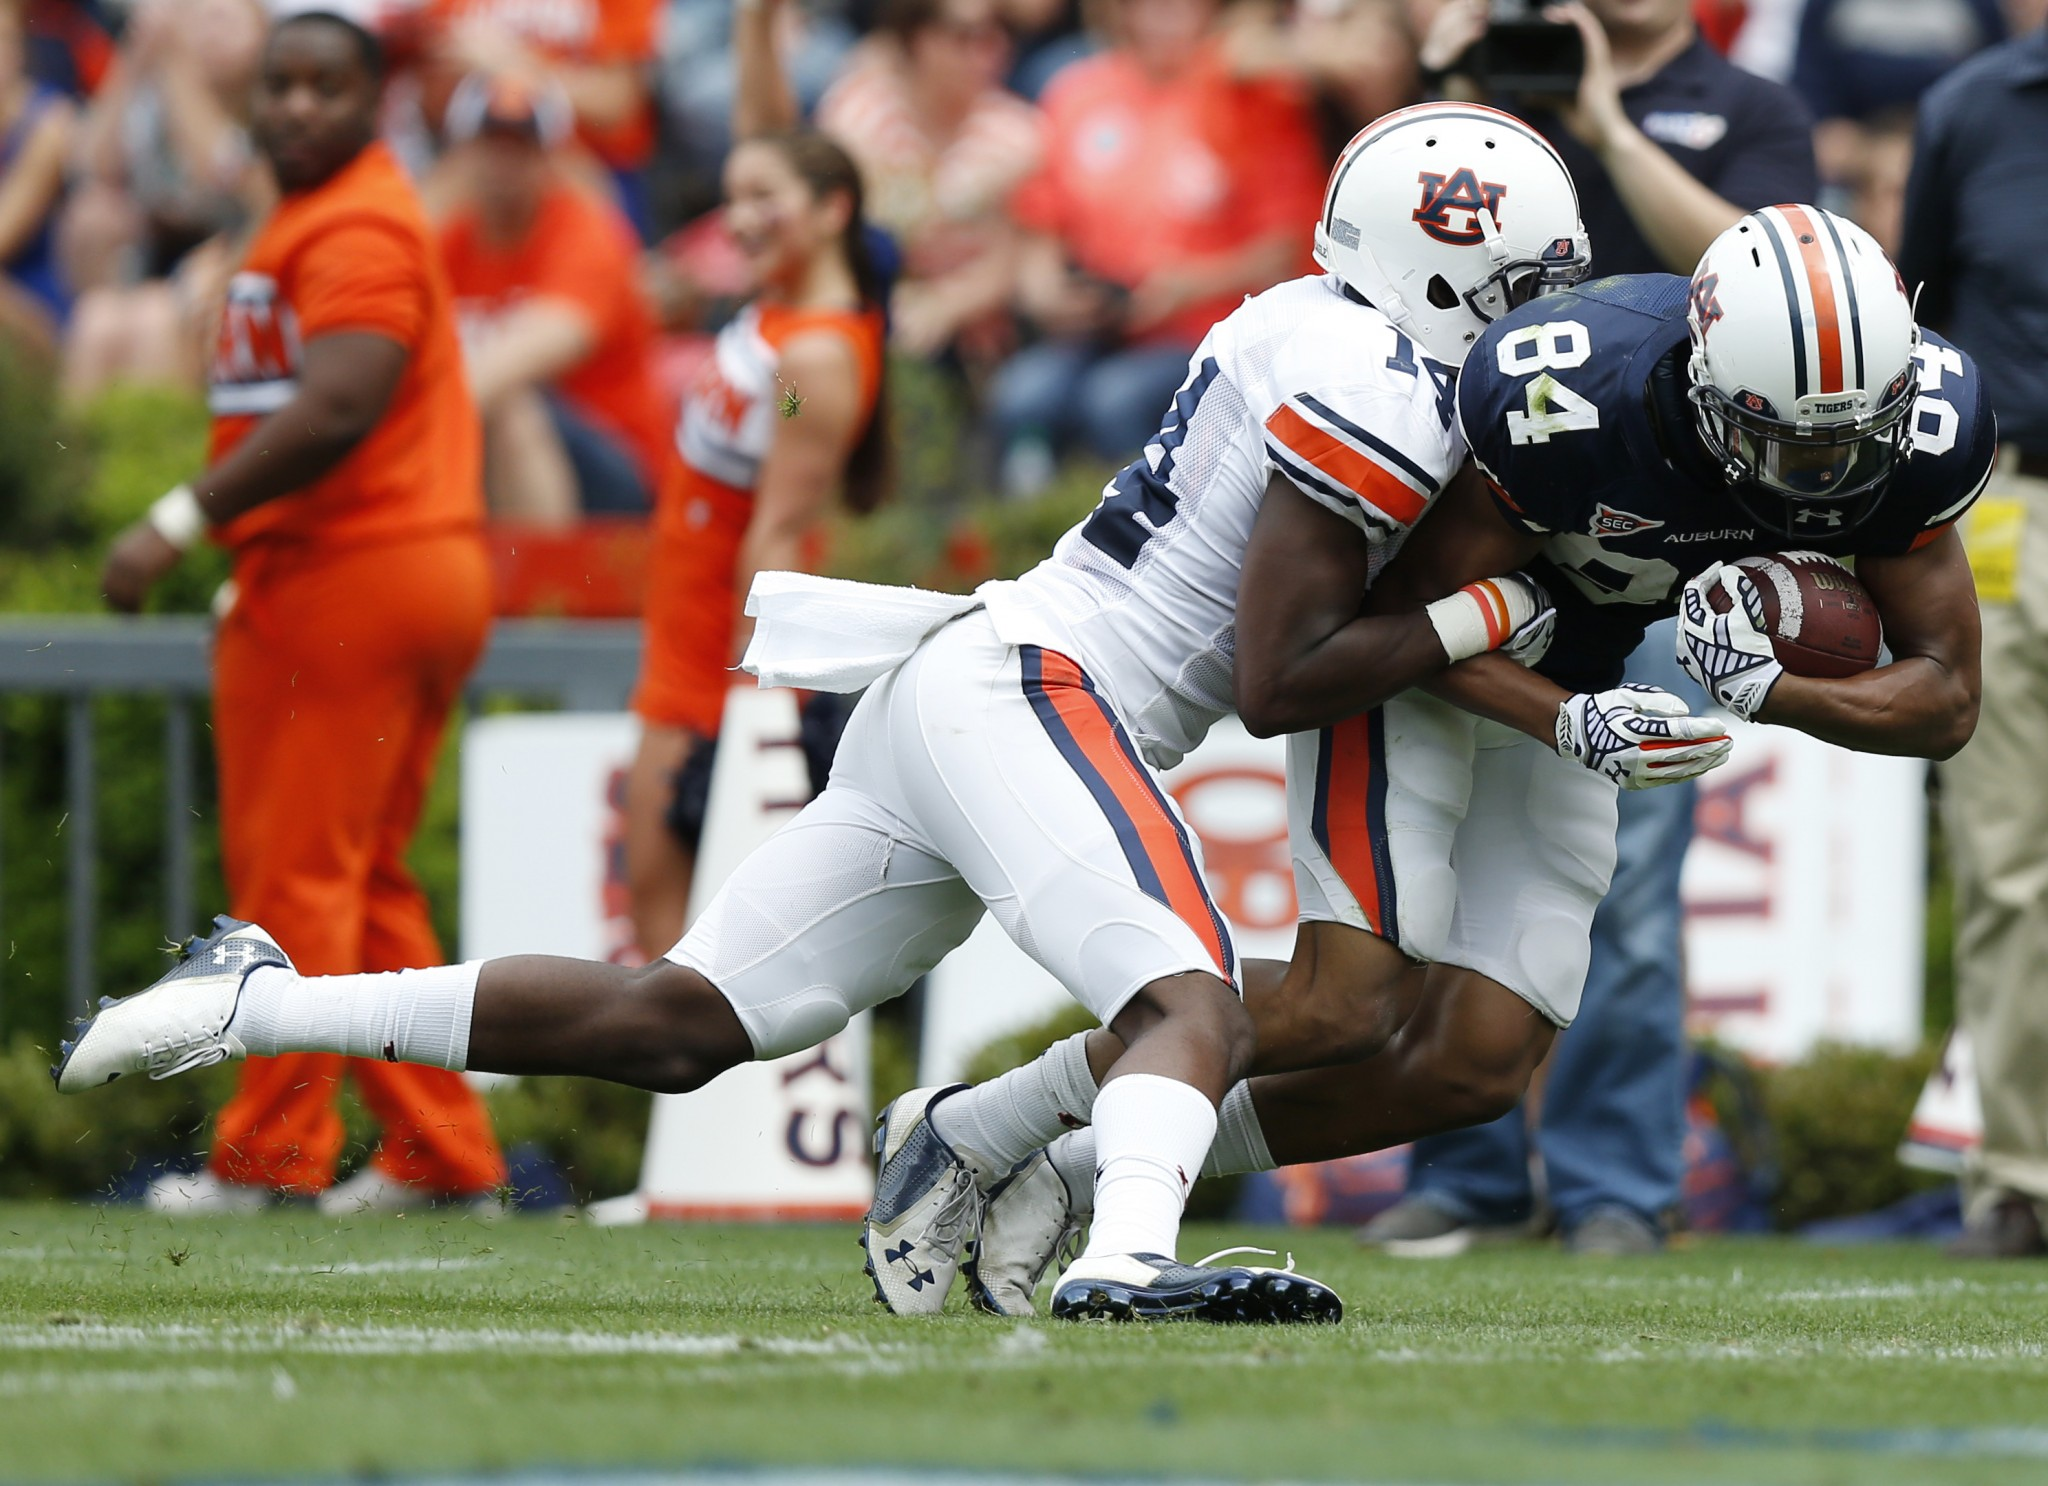 Auburn receiver Myron Burton Jr. (84) scores against Auburn Stephen Roberts (14) during their spring game. (AP Photo/Brynn Anderson)